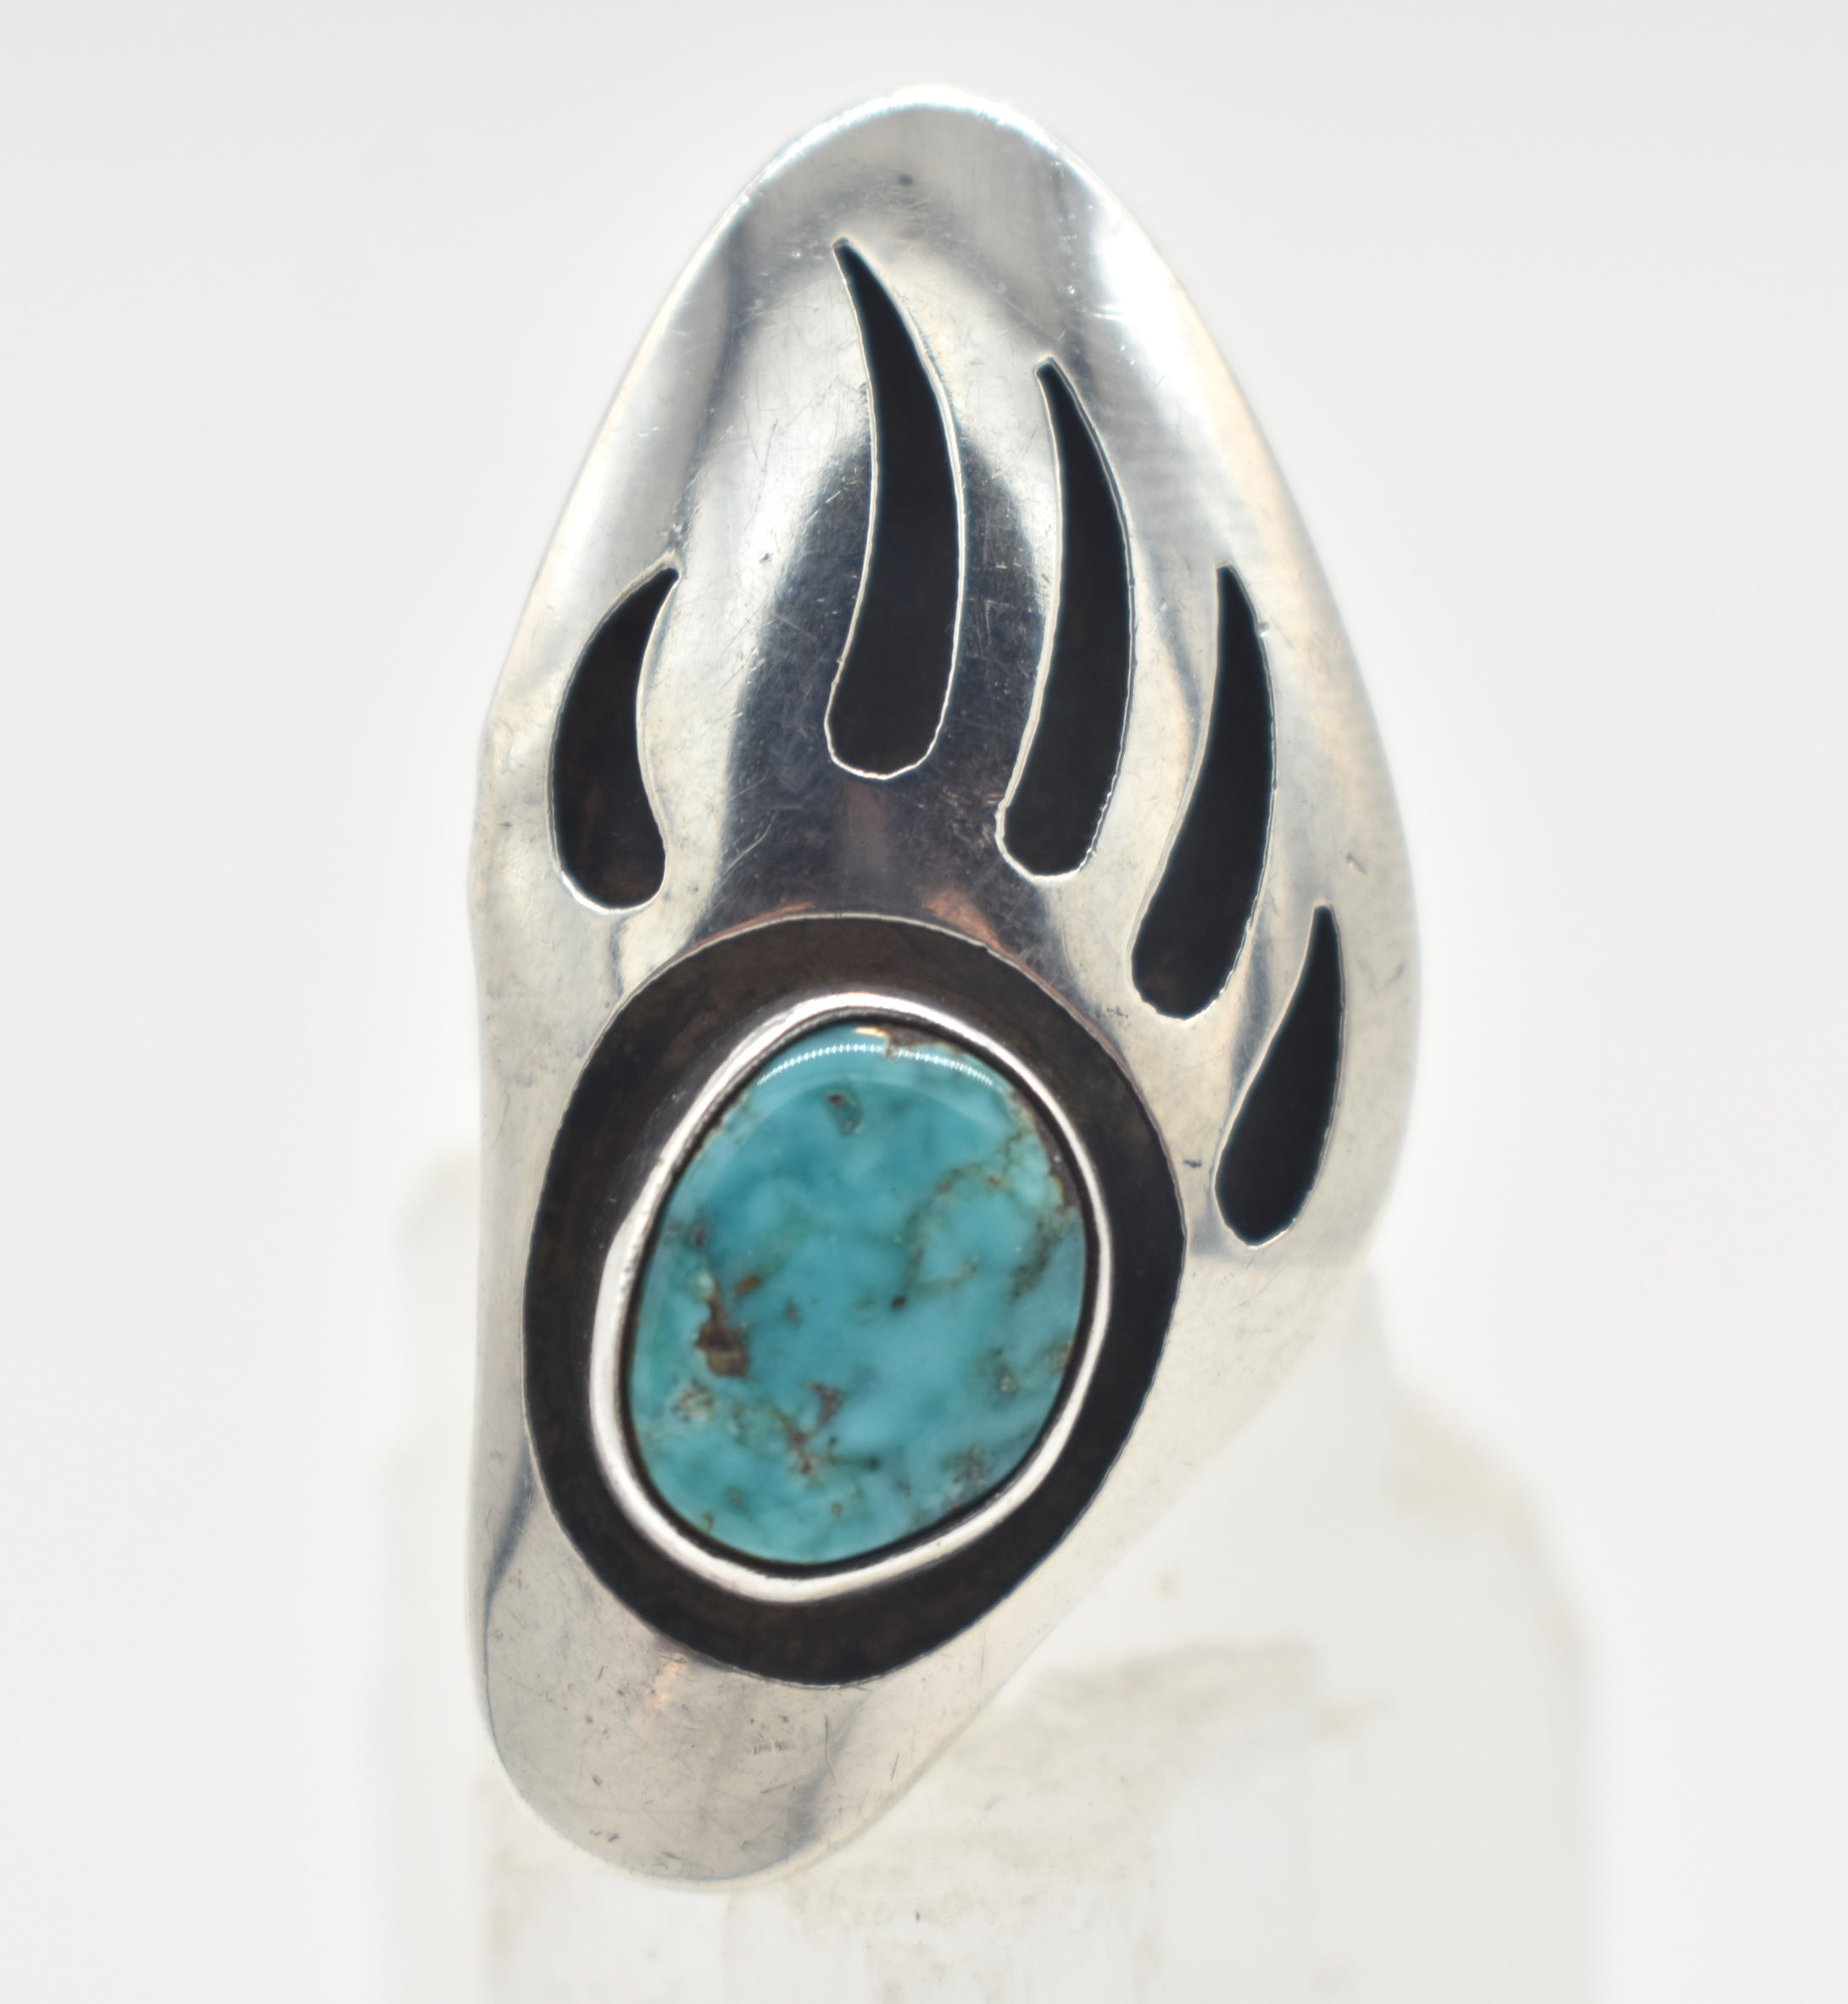 Bear Paw Turquoise and Sterling Silver Southwest Style Shadow Box Ring - Size 5.5